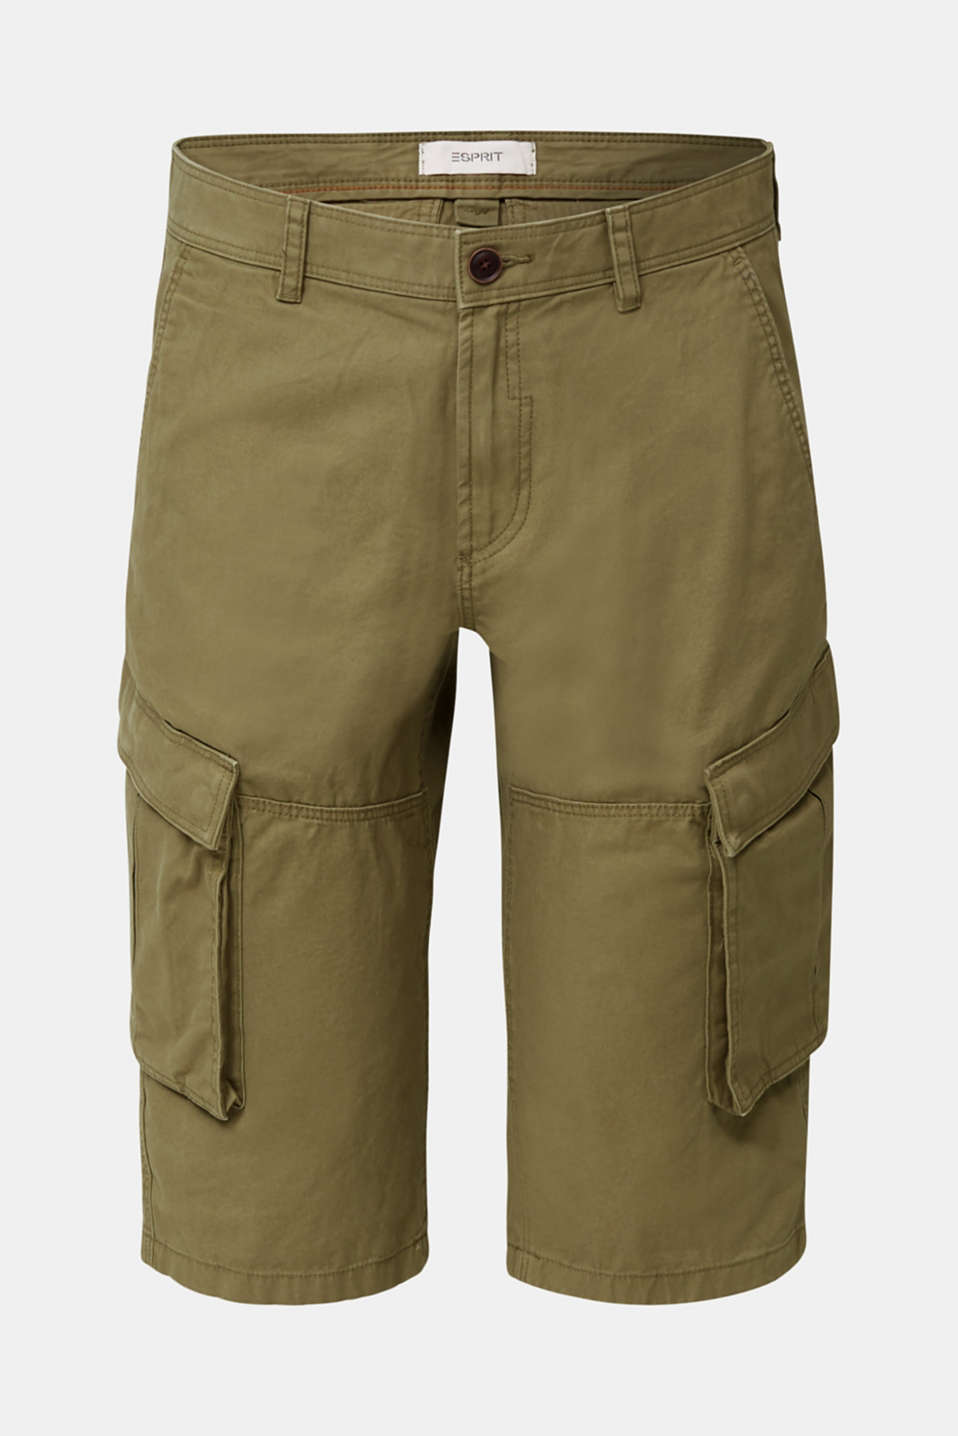 Cargo Bermudas in 100% cotton, OLIVE, detail image number 7